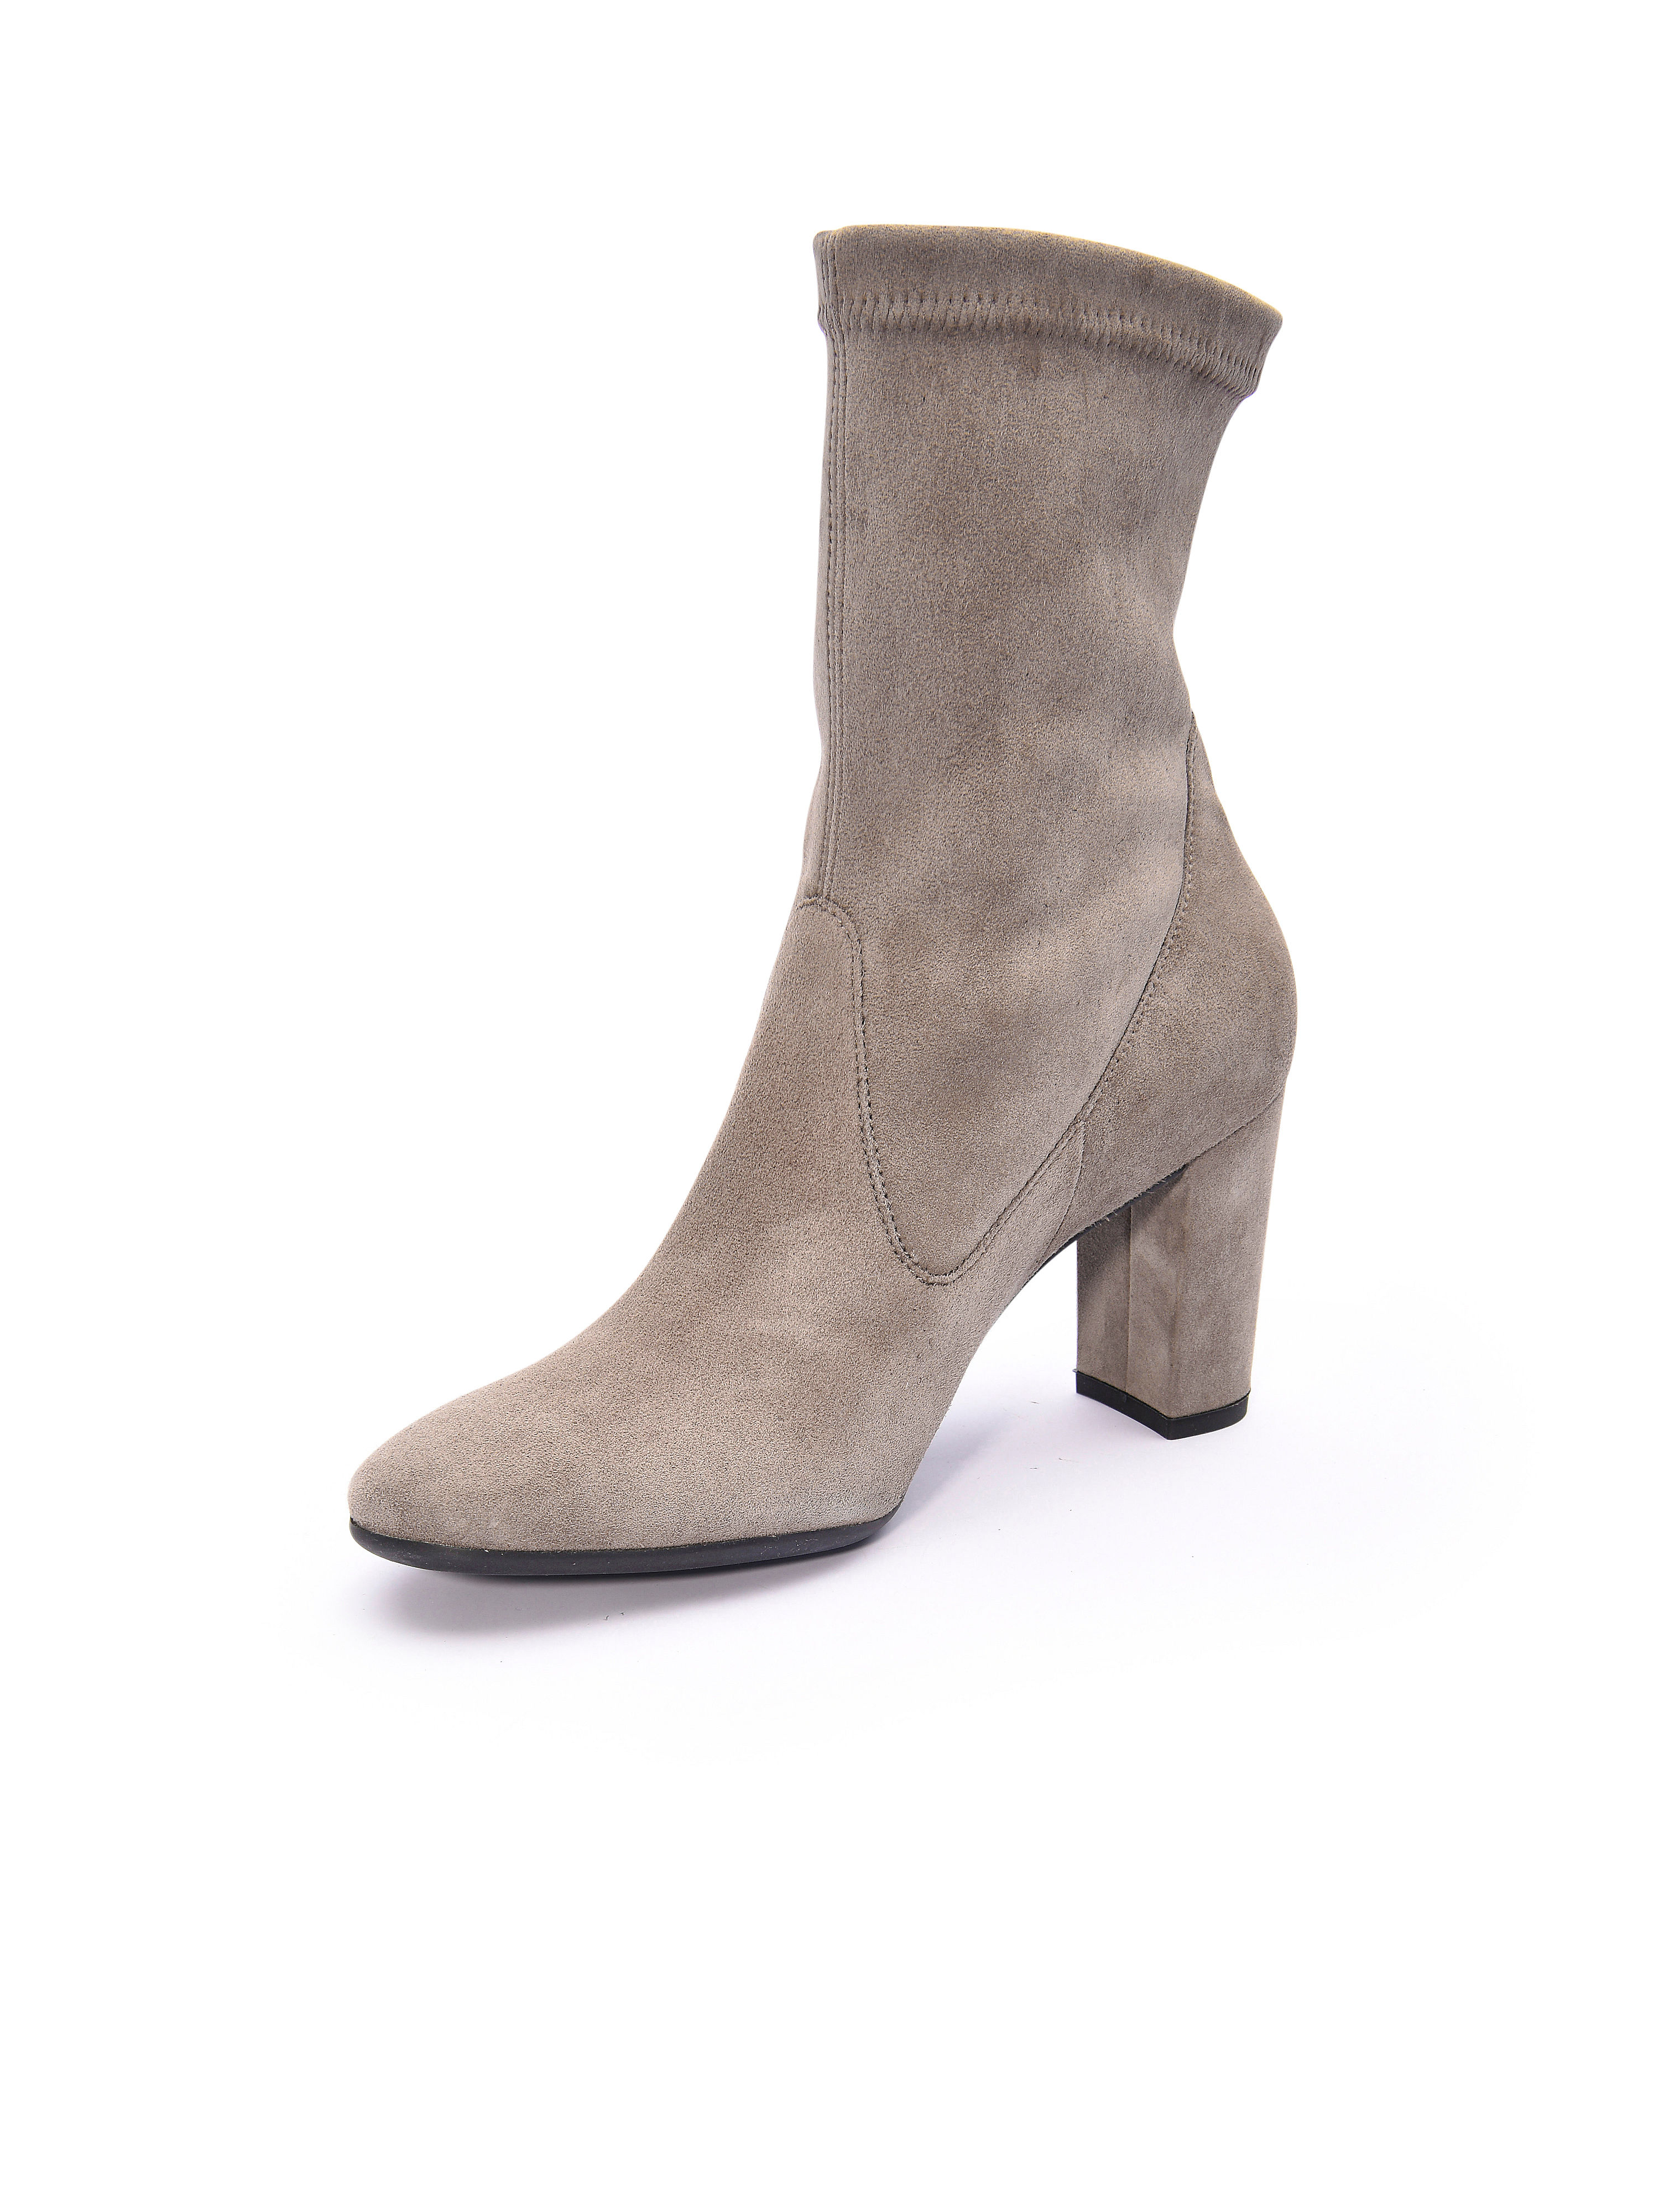 Pullon ankle boots from Paul Green beige